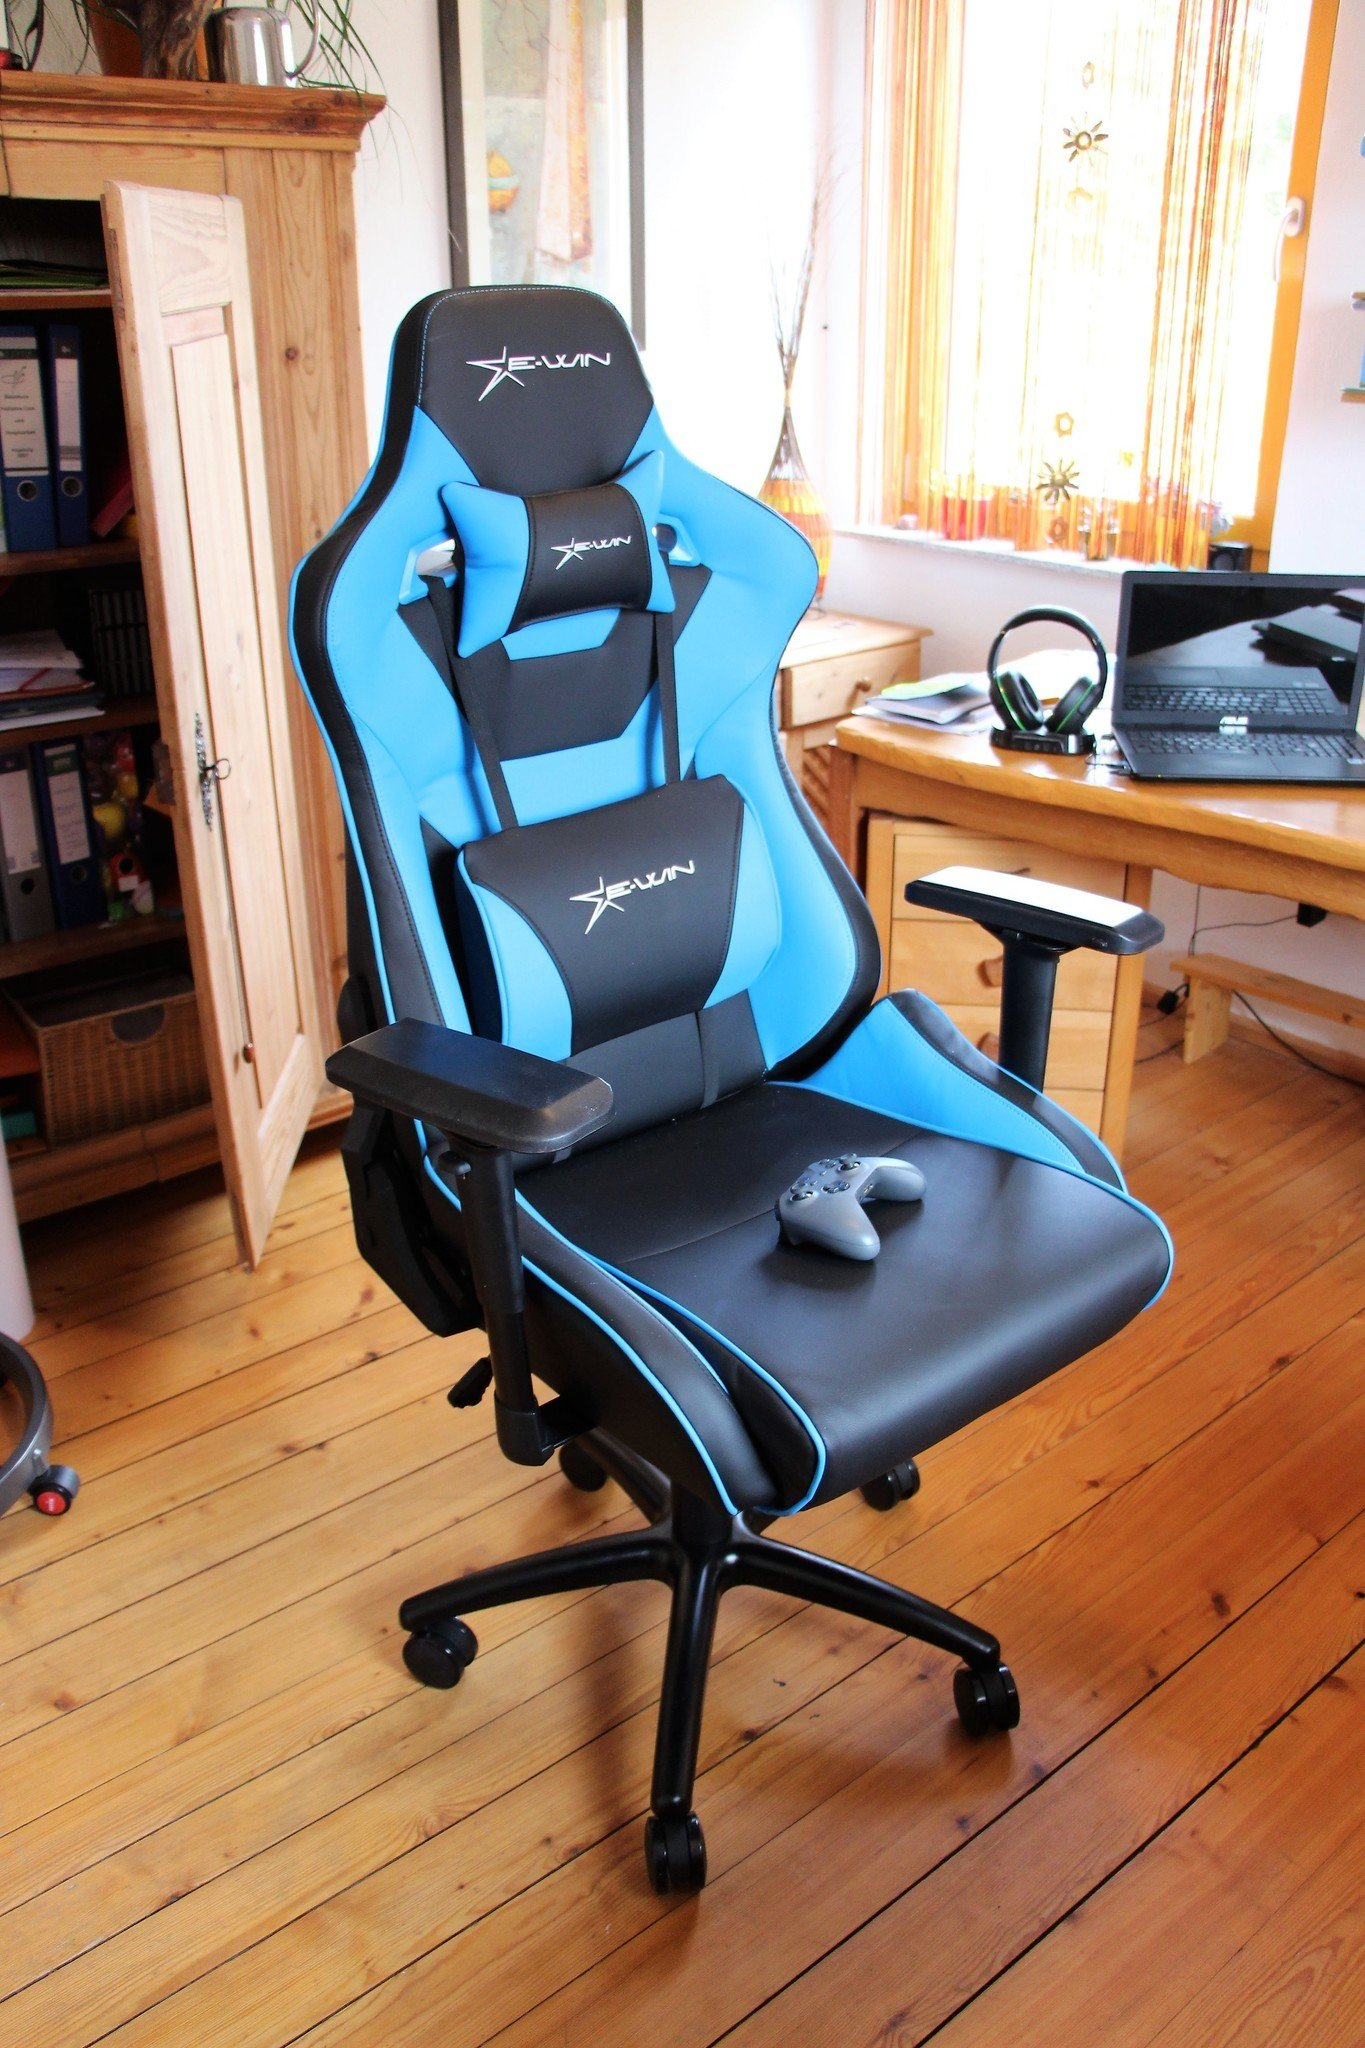 heavy duty gaming chair transparent polycarbonate chairs ewin flash xl review a large seat for comfortable at glance the is very similar to calling series we reviewed little while back it has many of same features